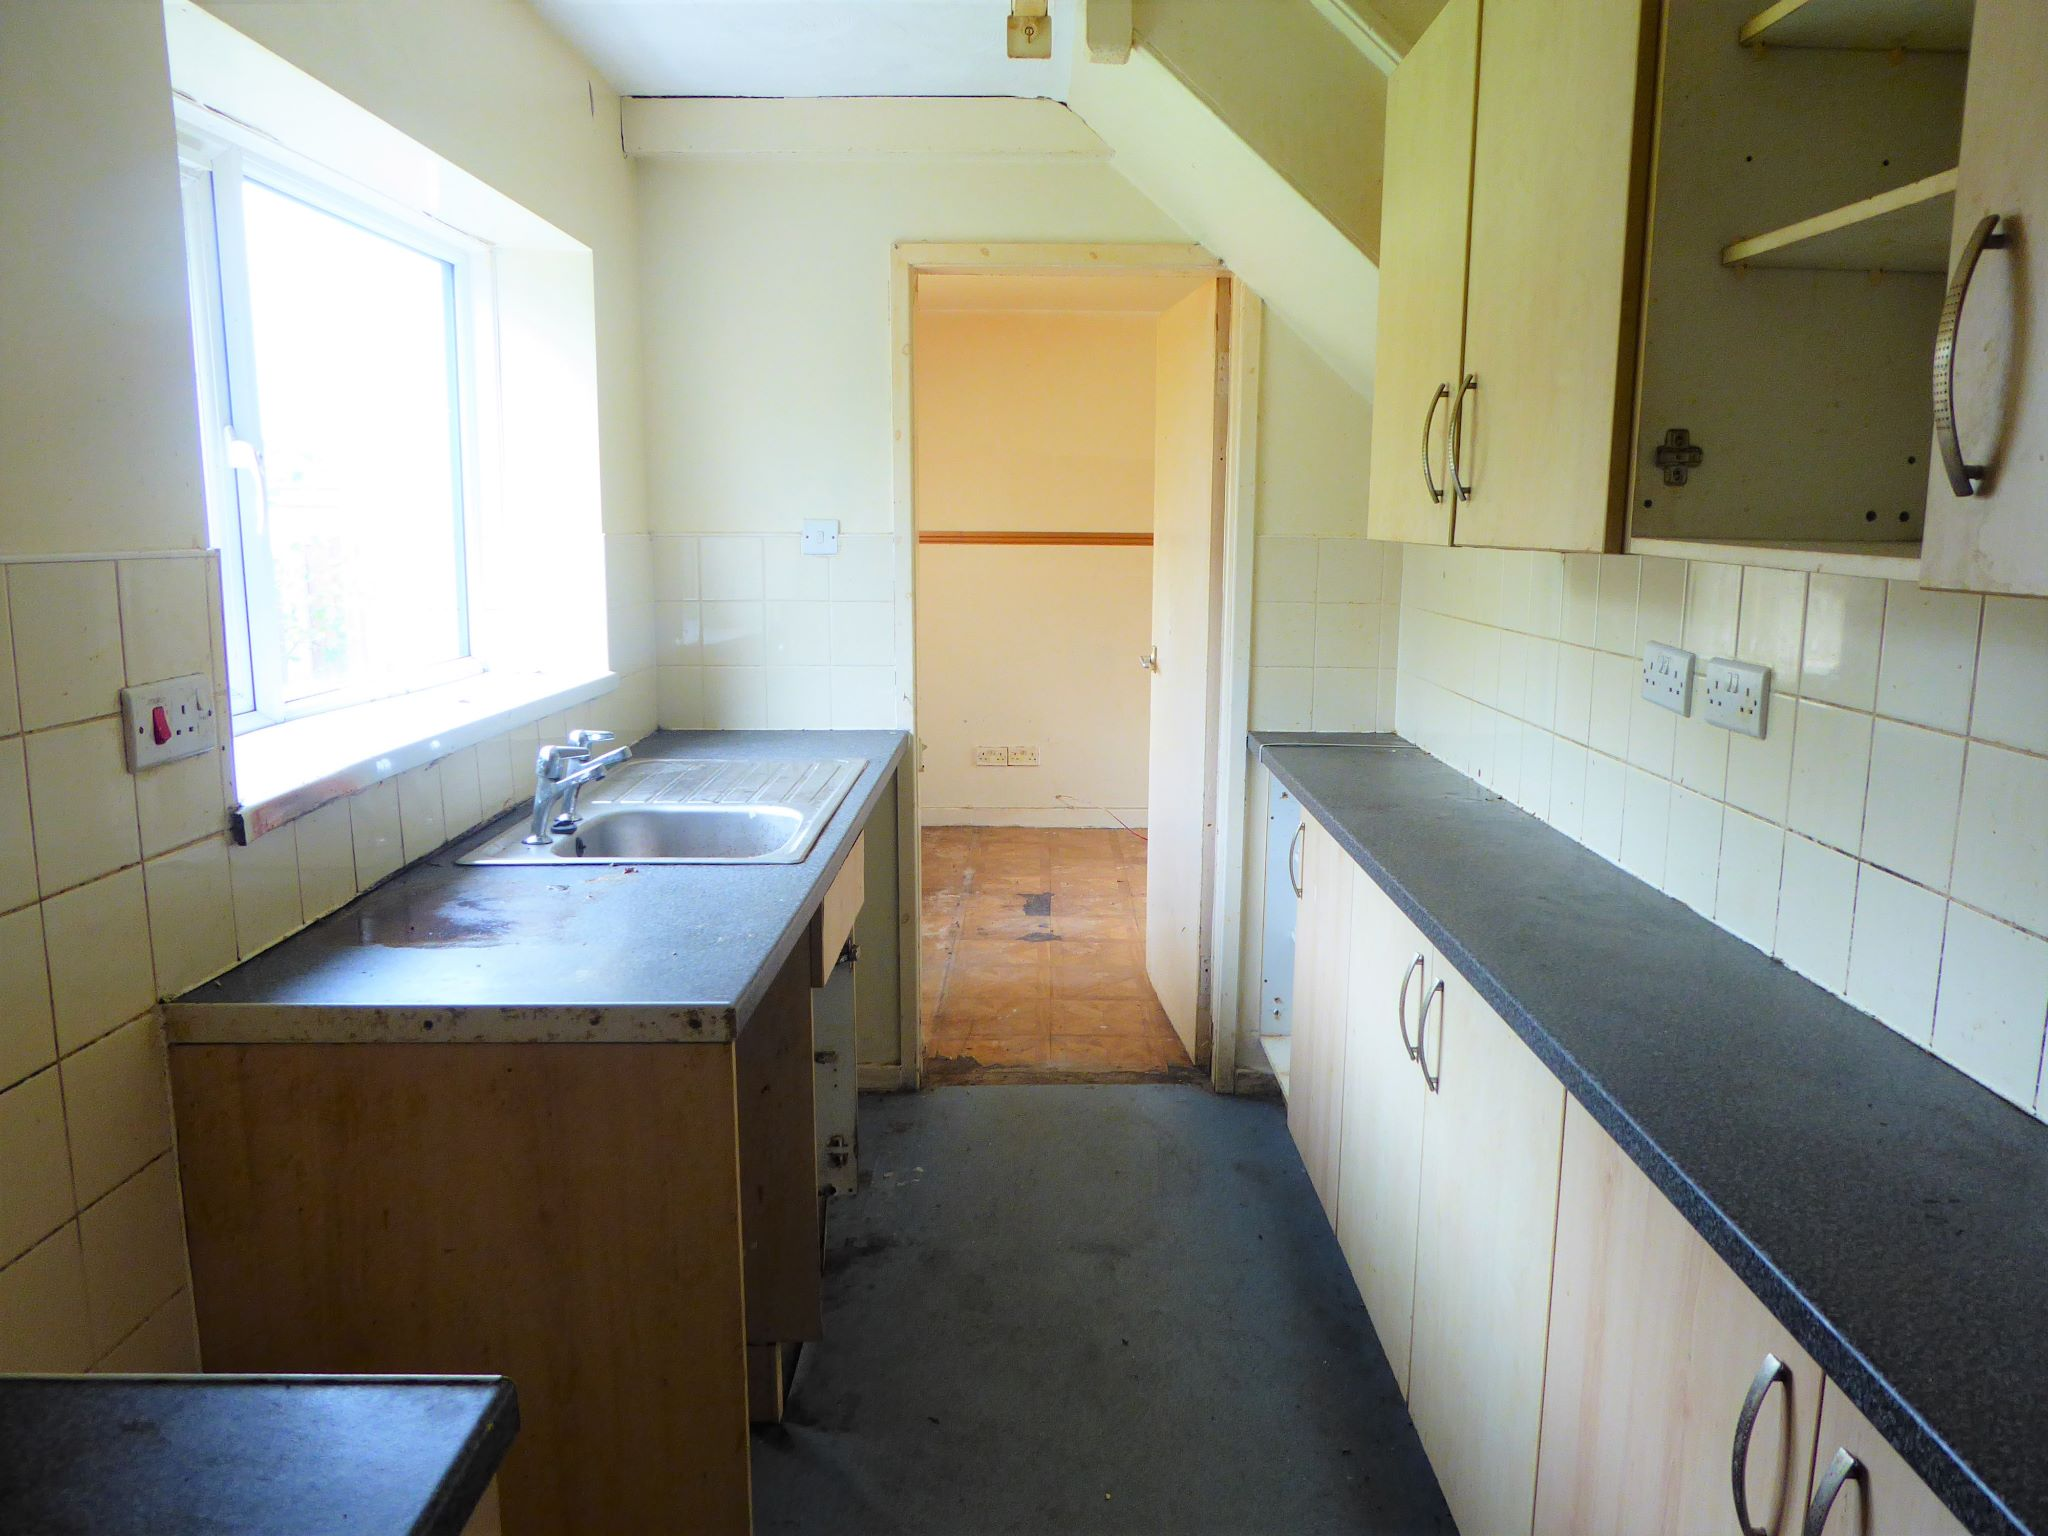 3 bedroom mid terraced house SSTC in Abergele - Photograph 4